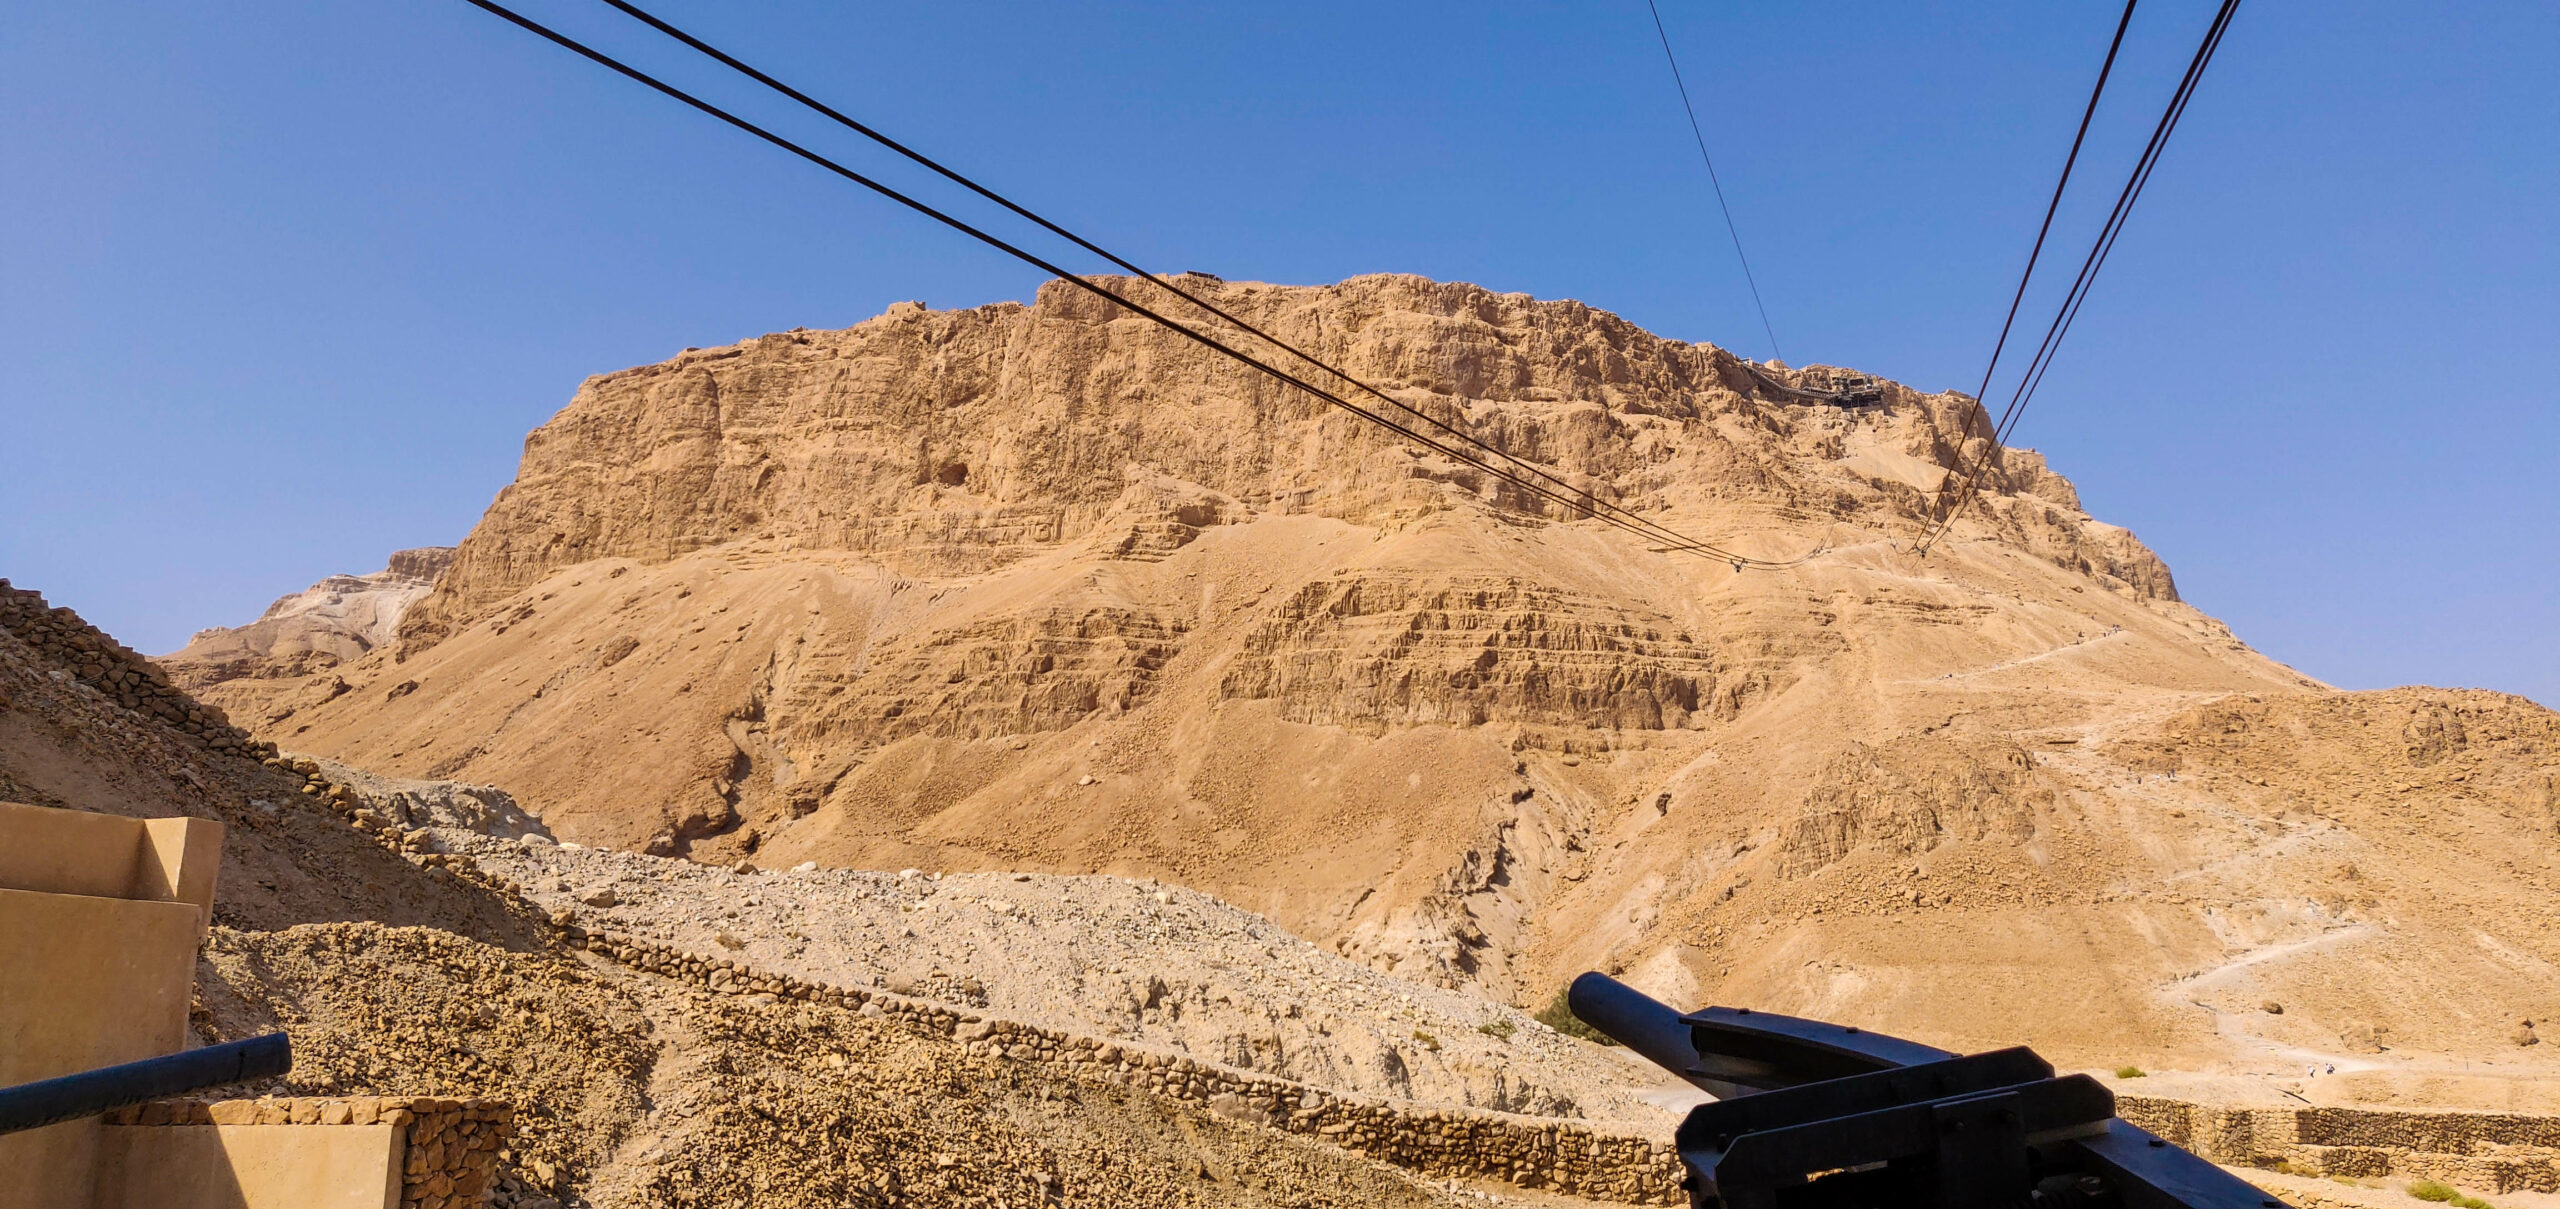 Discover Masada: Israel's Magnificent Two-Thousand-Year-Old Mountain-Top Fortress by the Dead Sea